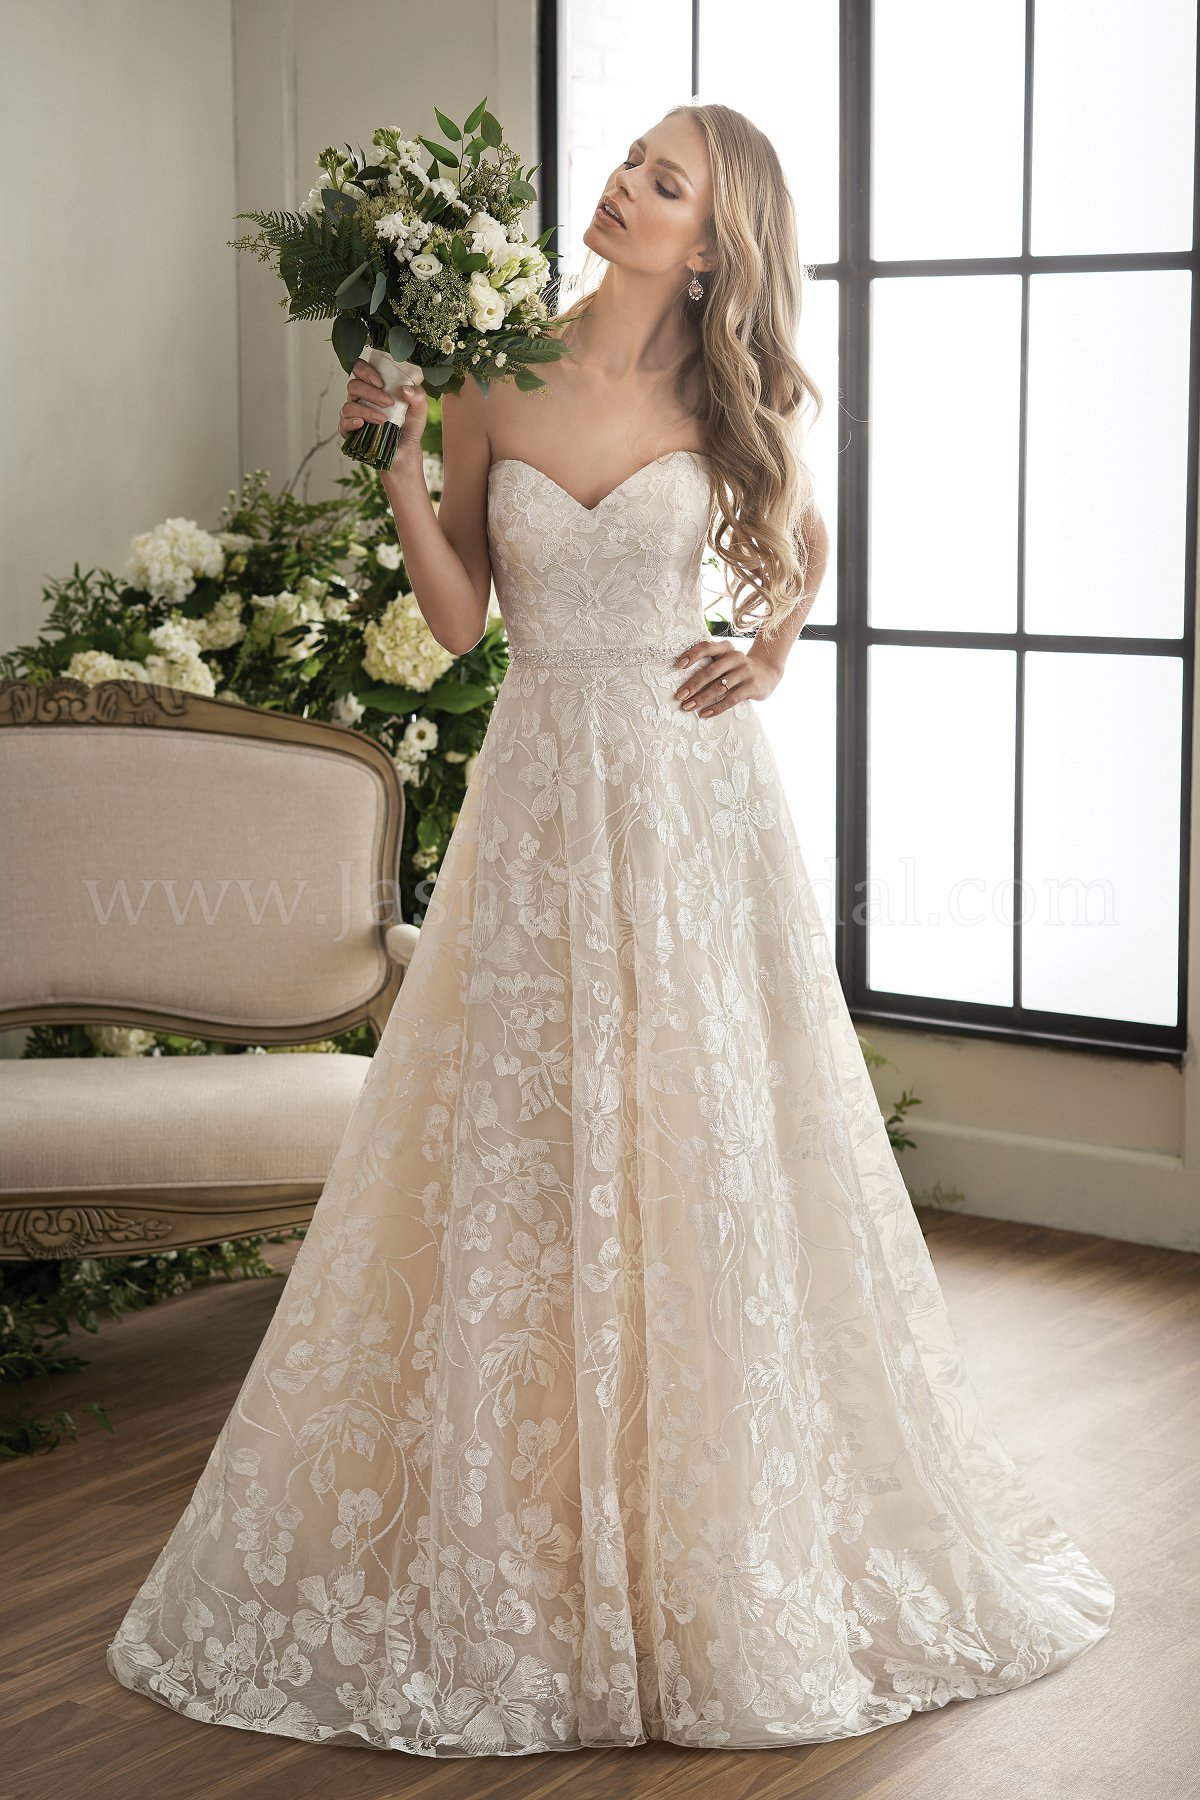 T202010 Sweetheart Strapless Embroidered Lace Ball Gown Wedding Dress